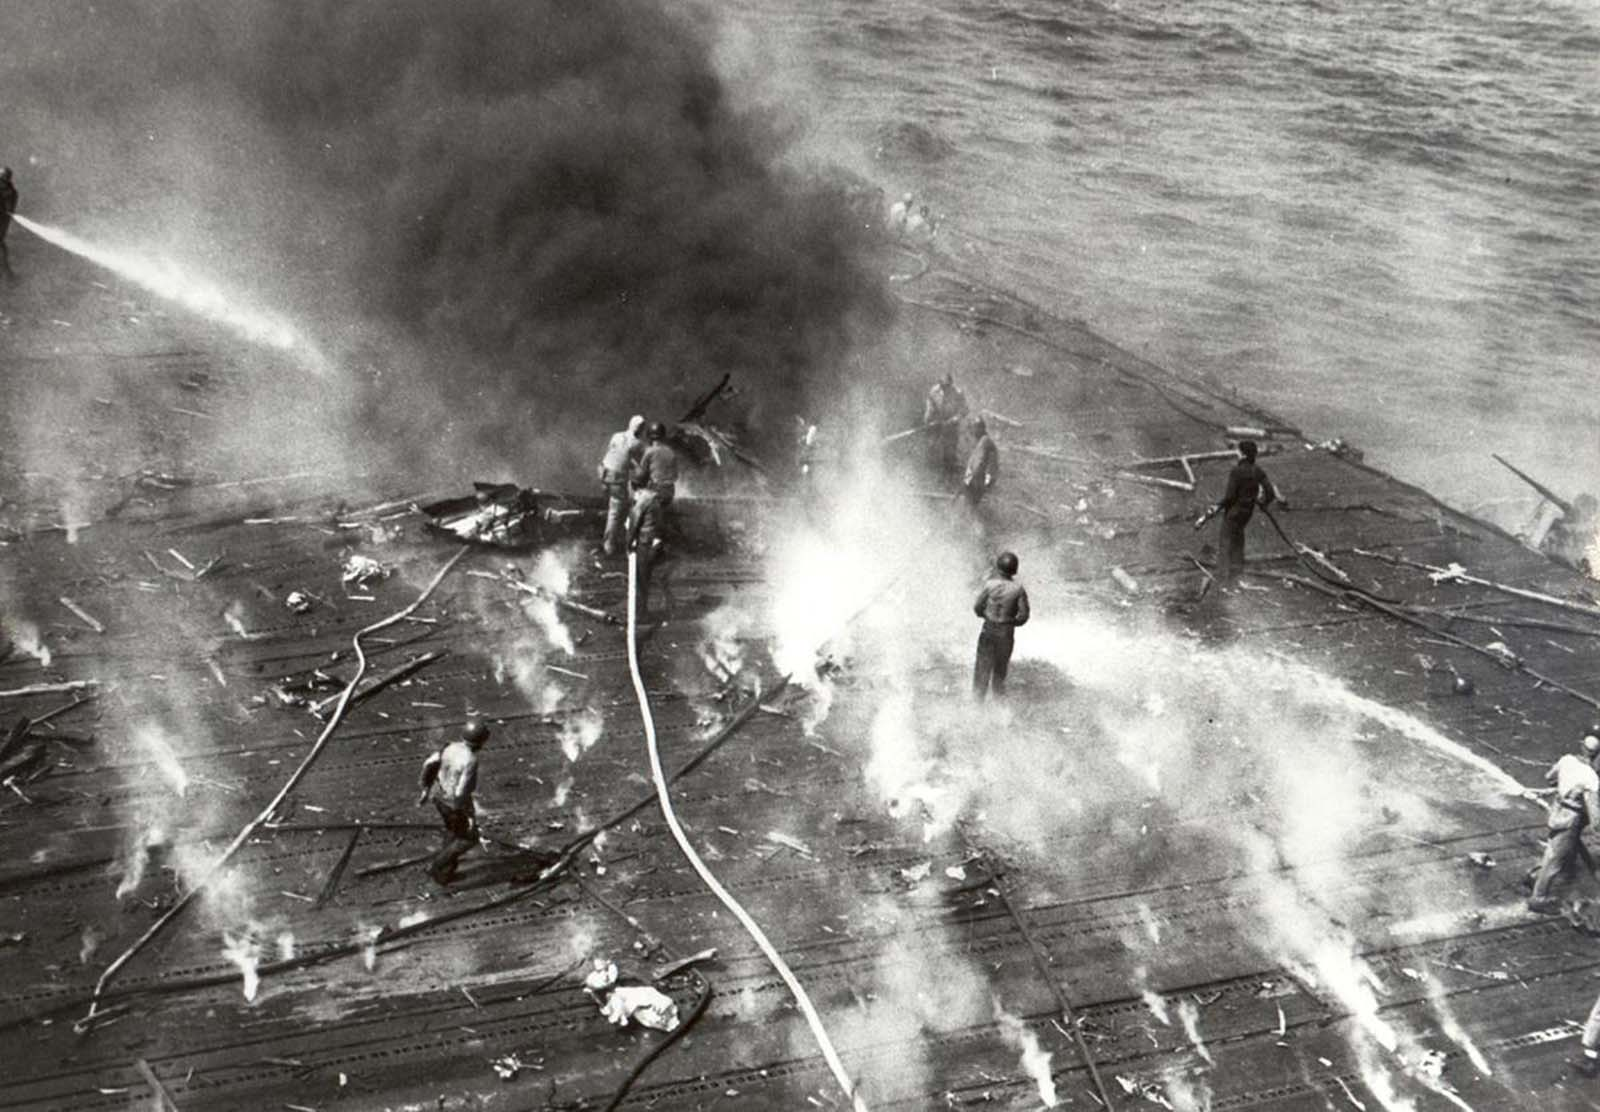 Black smoke pours from the aircraft carrier Yorktown after she suffered hits from Japanese aircraft during the Battle of Midway, on June 4, 1942.